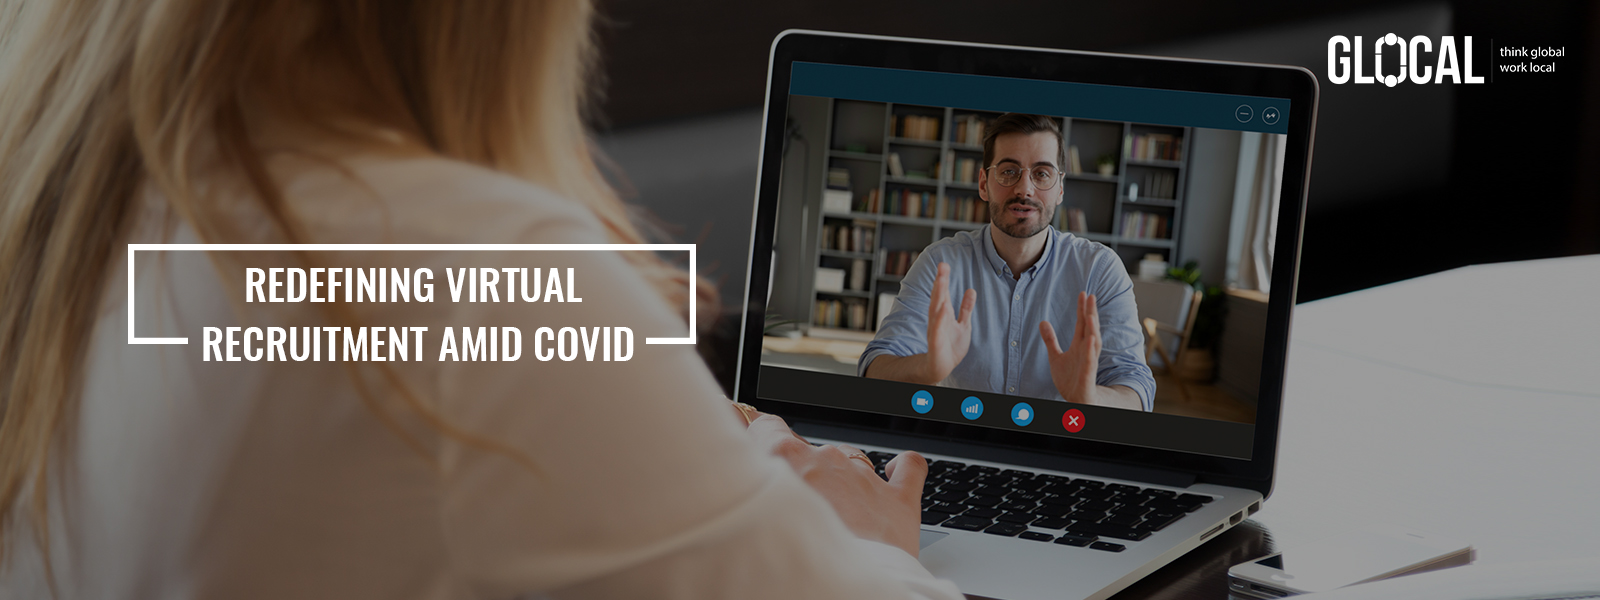 virtual recruitment amid COVID-19